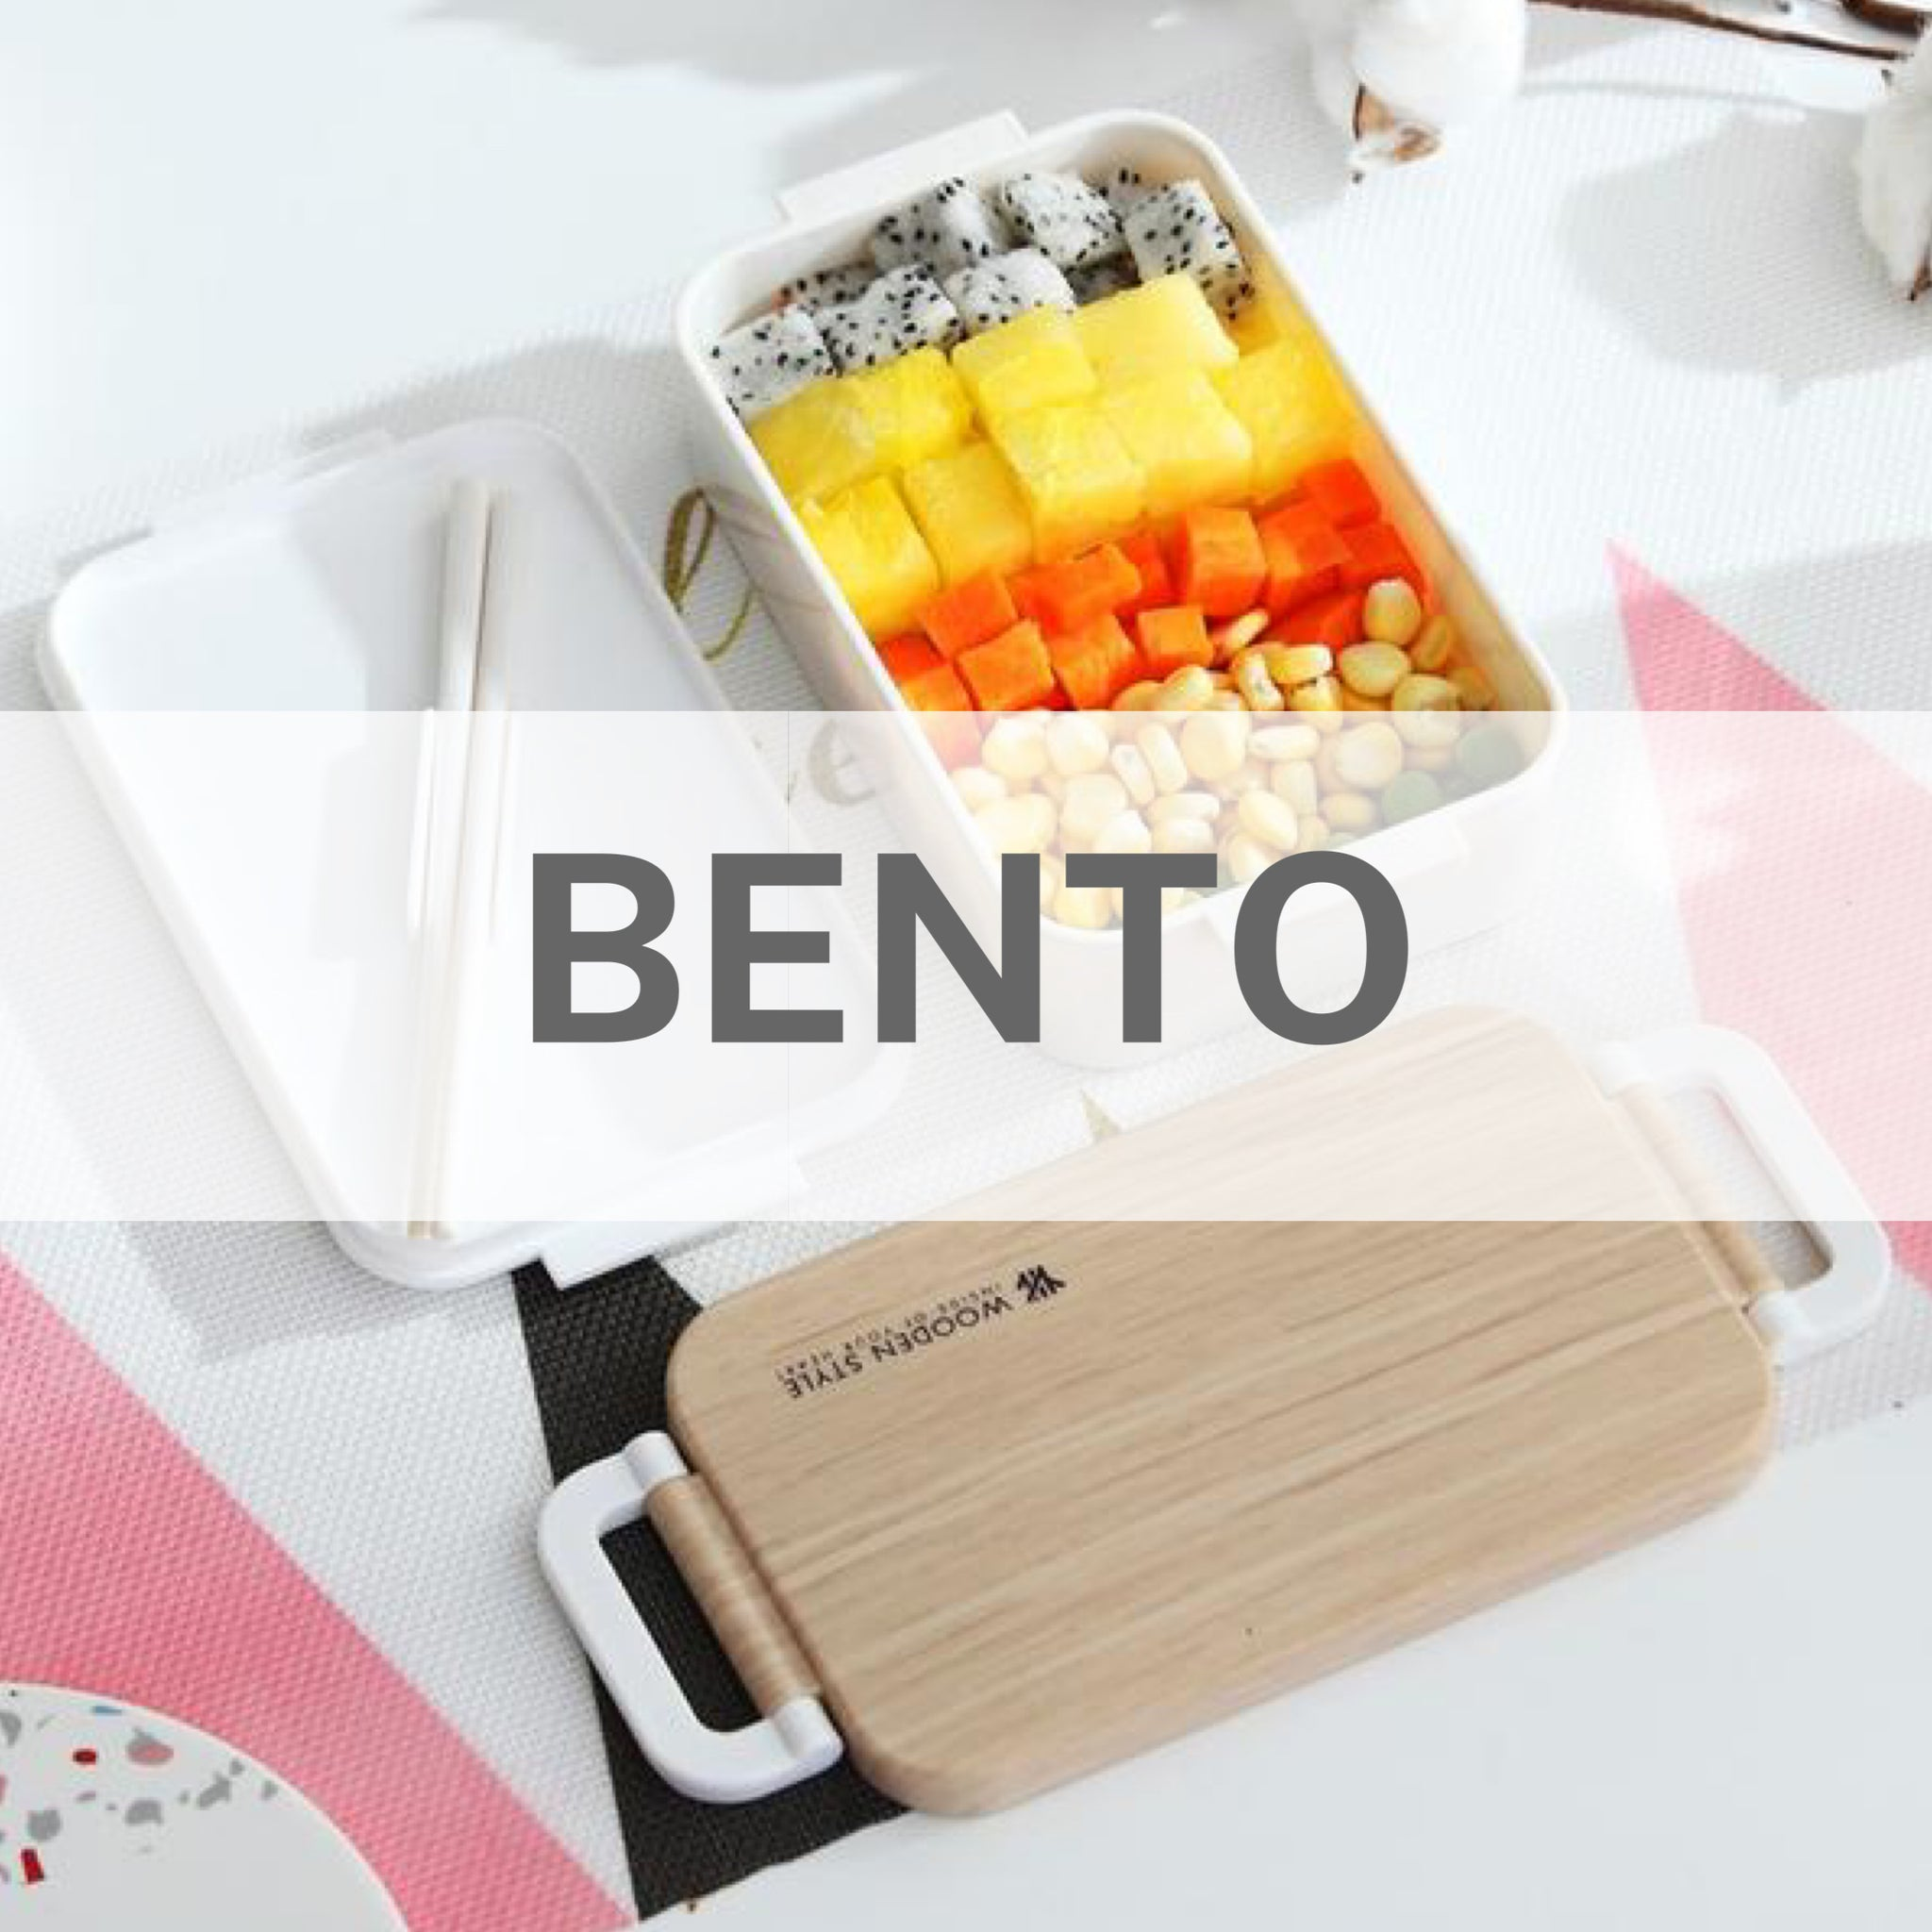 miTeigi | Bento | Japanese Apparel and Home Decor Retail Shopping